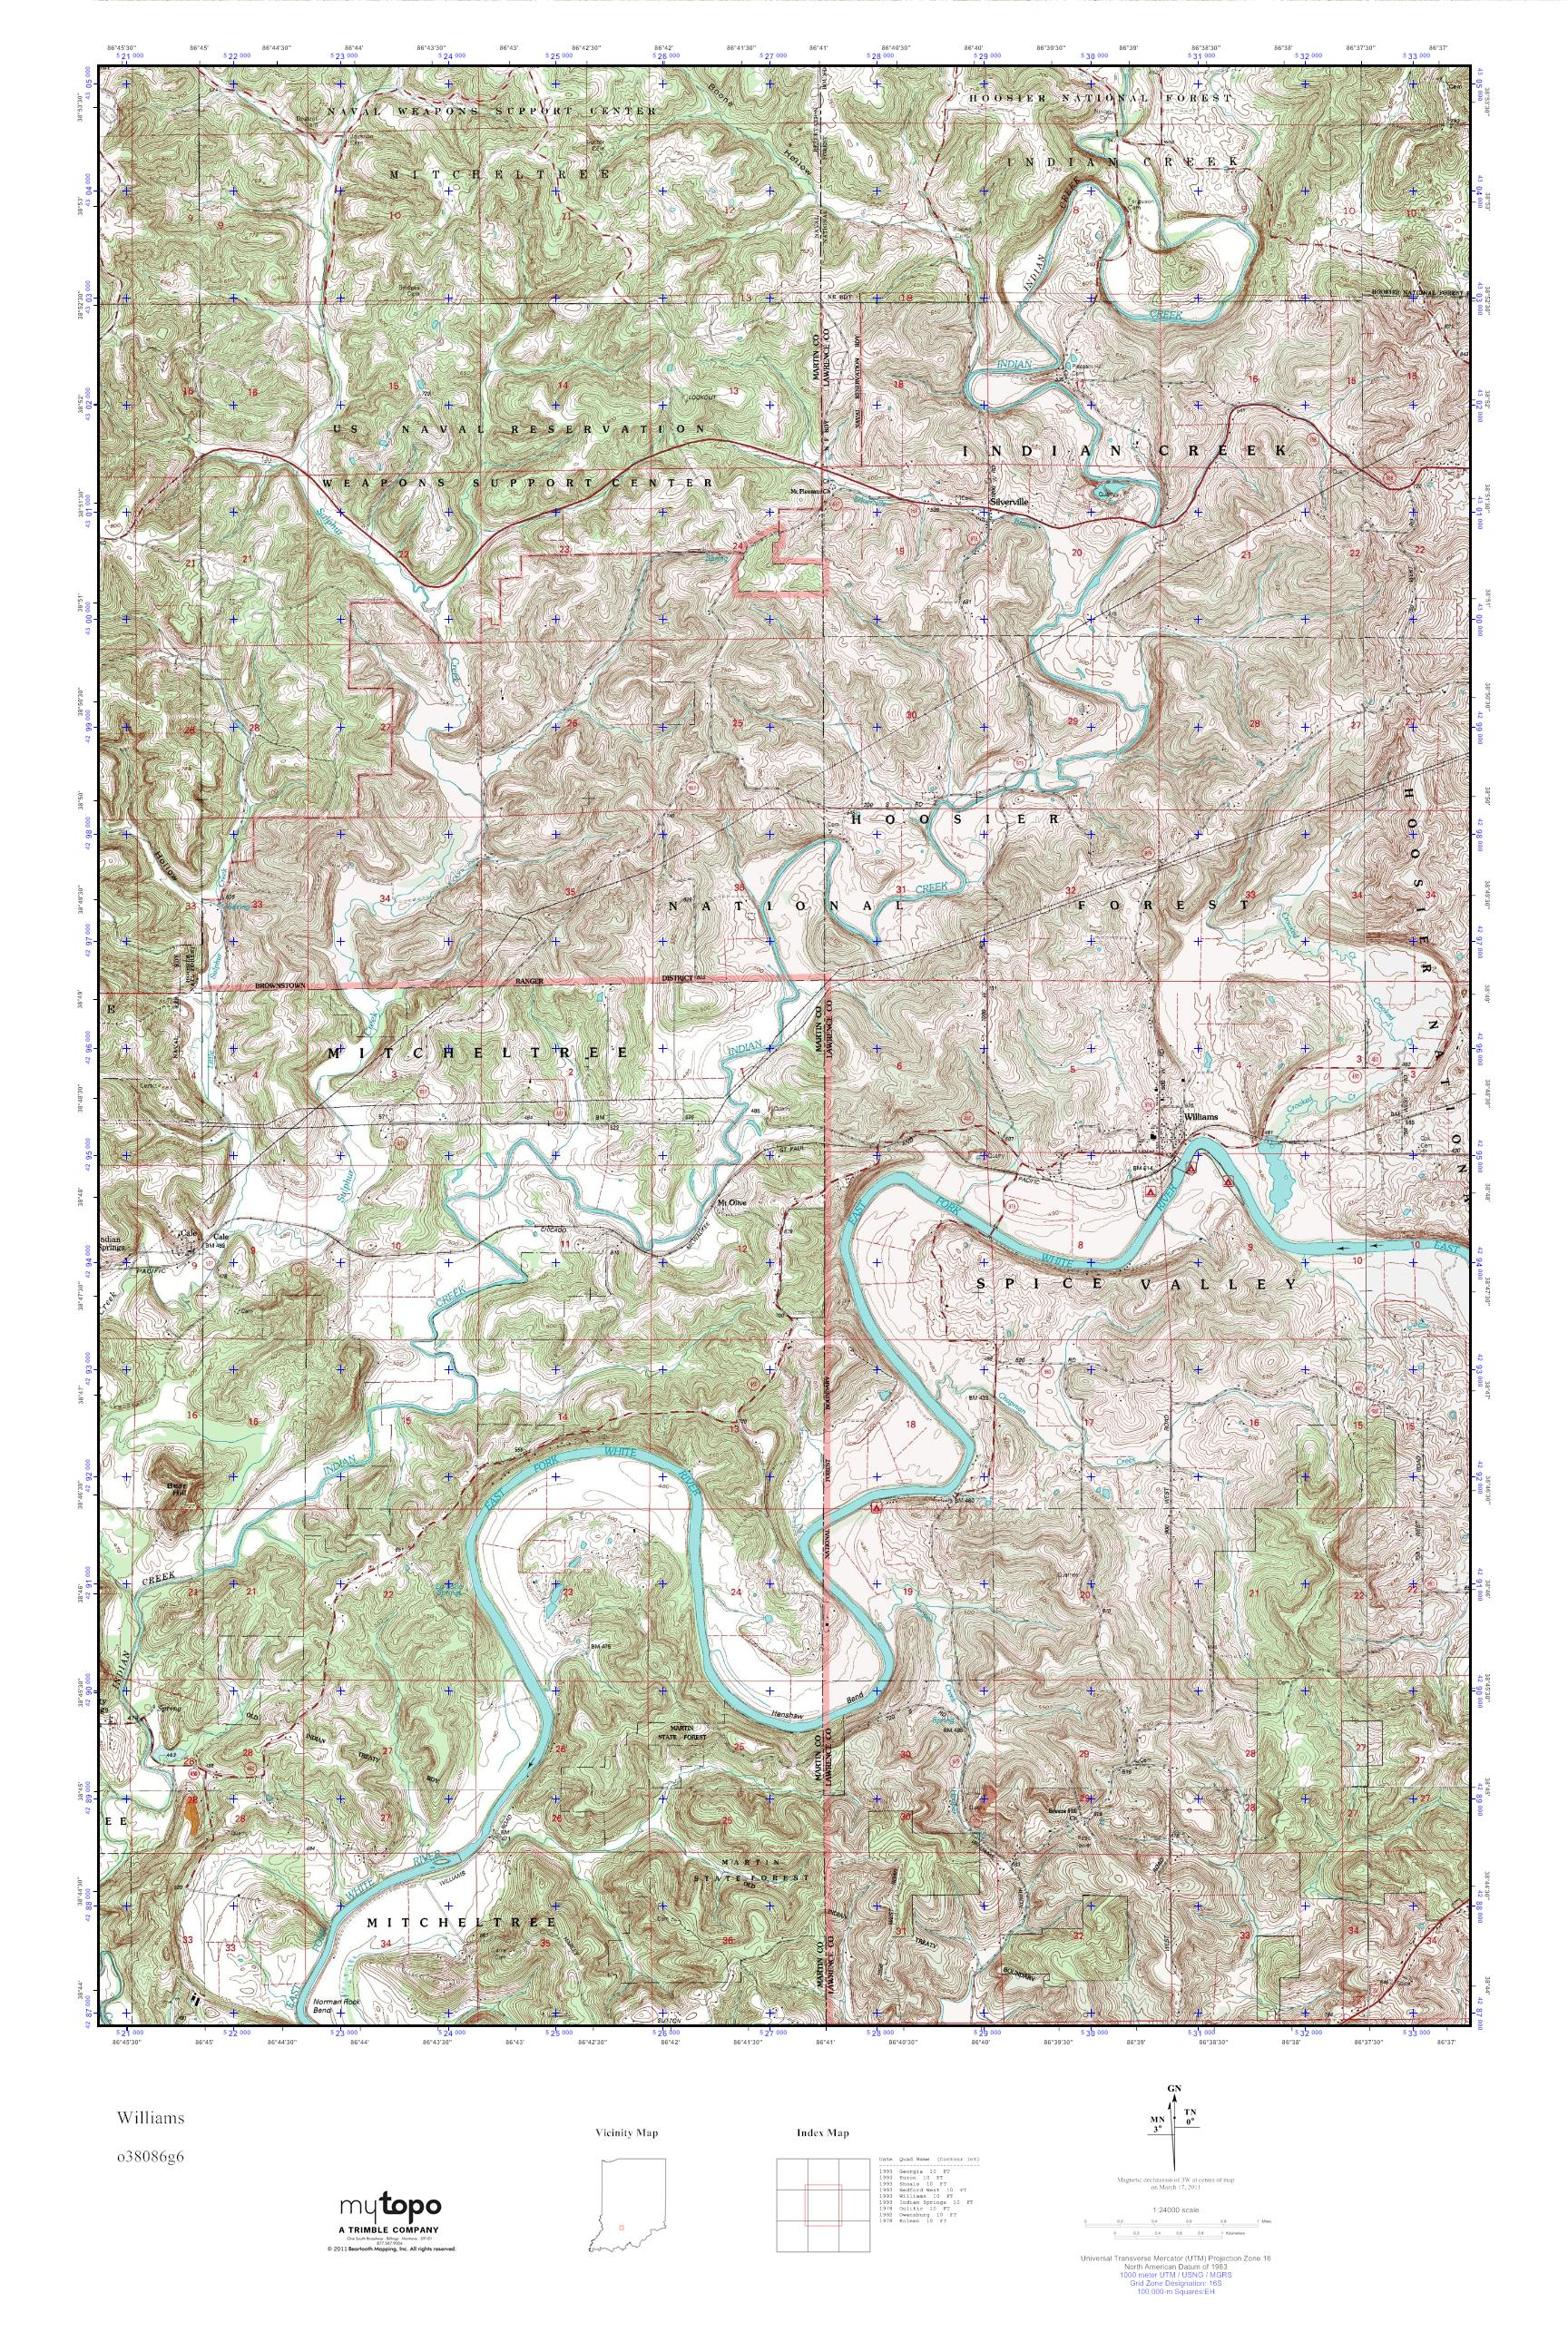 MyTopo Williams, Indiana USGS Quad Topo Map on